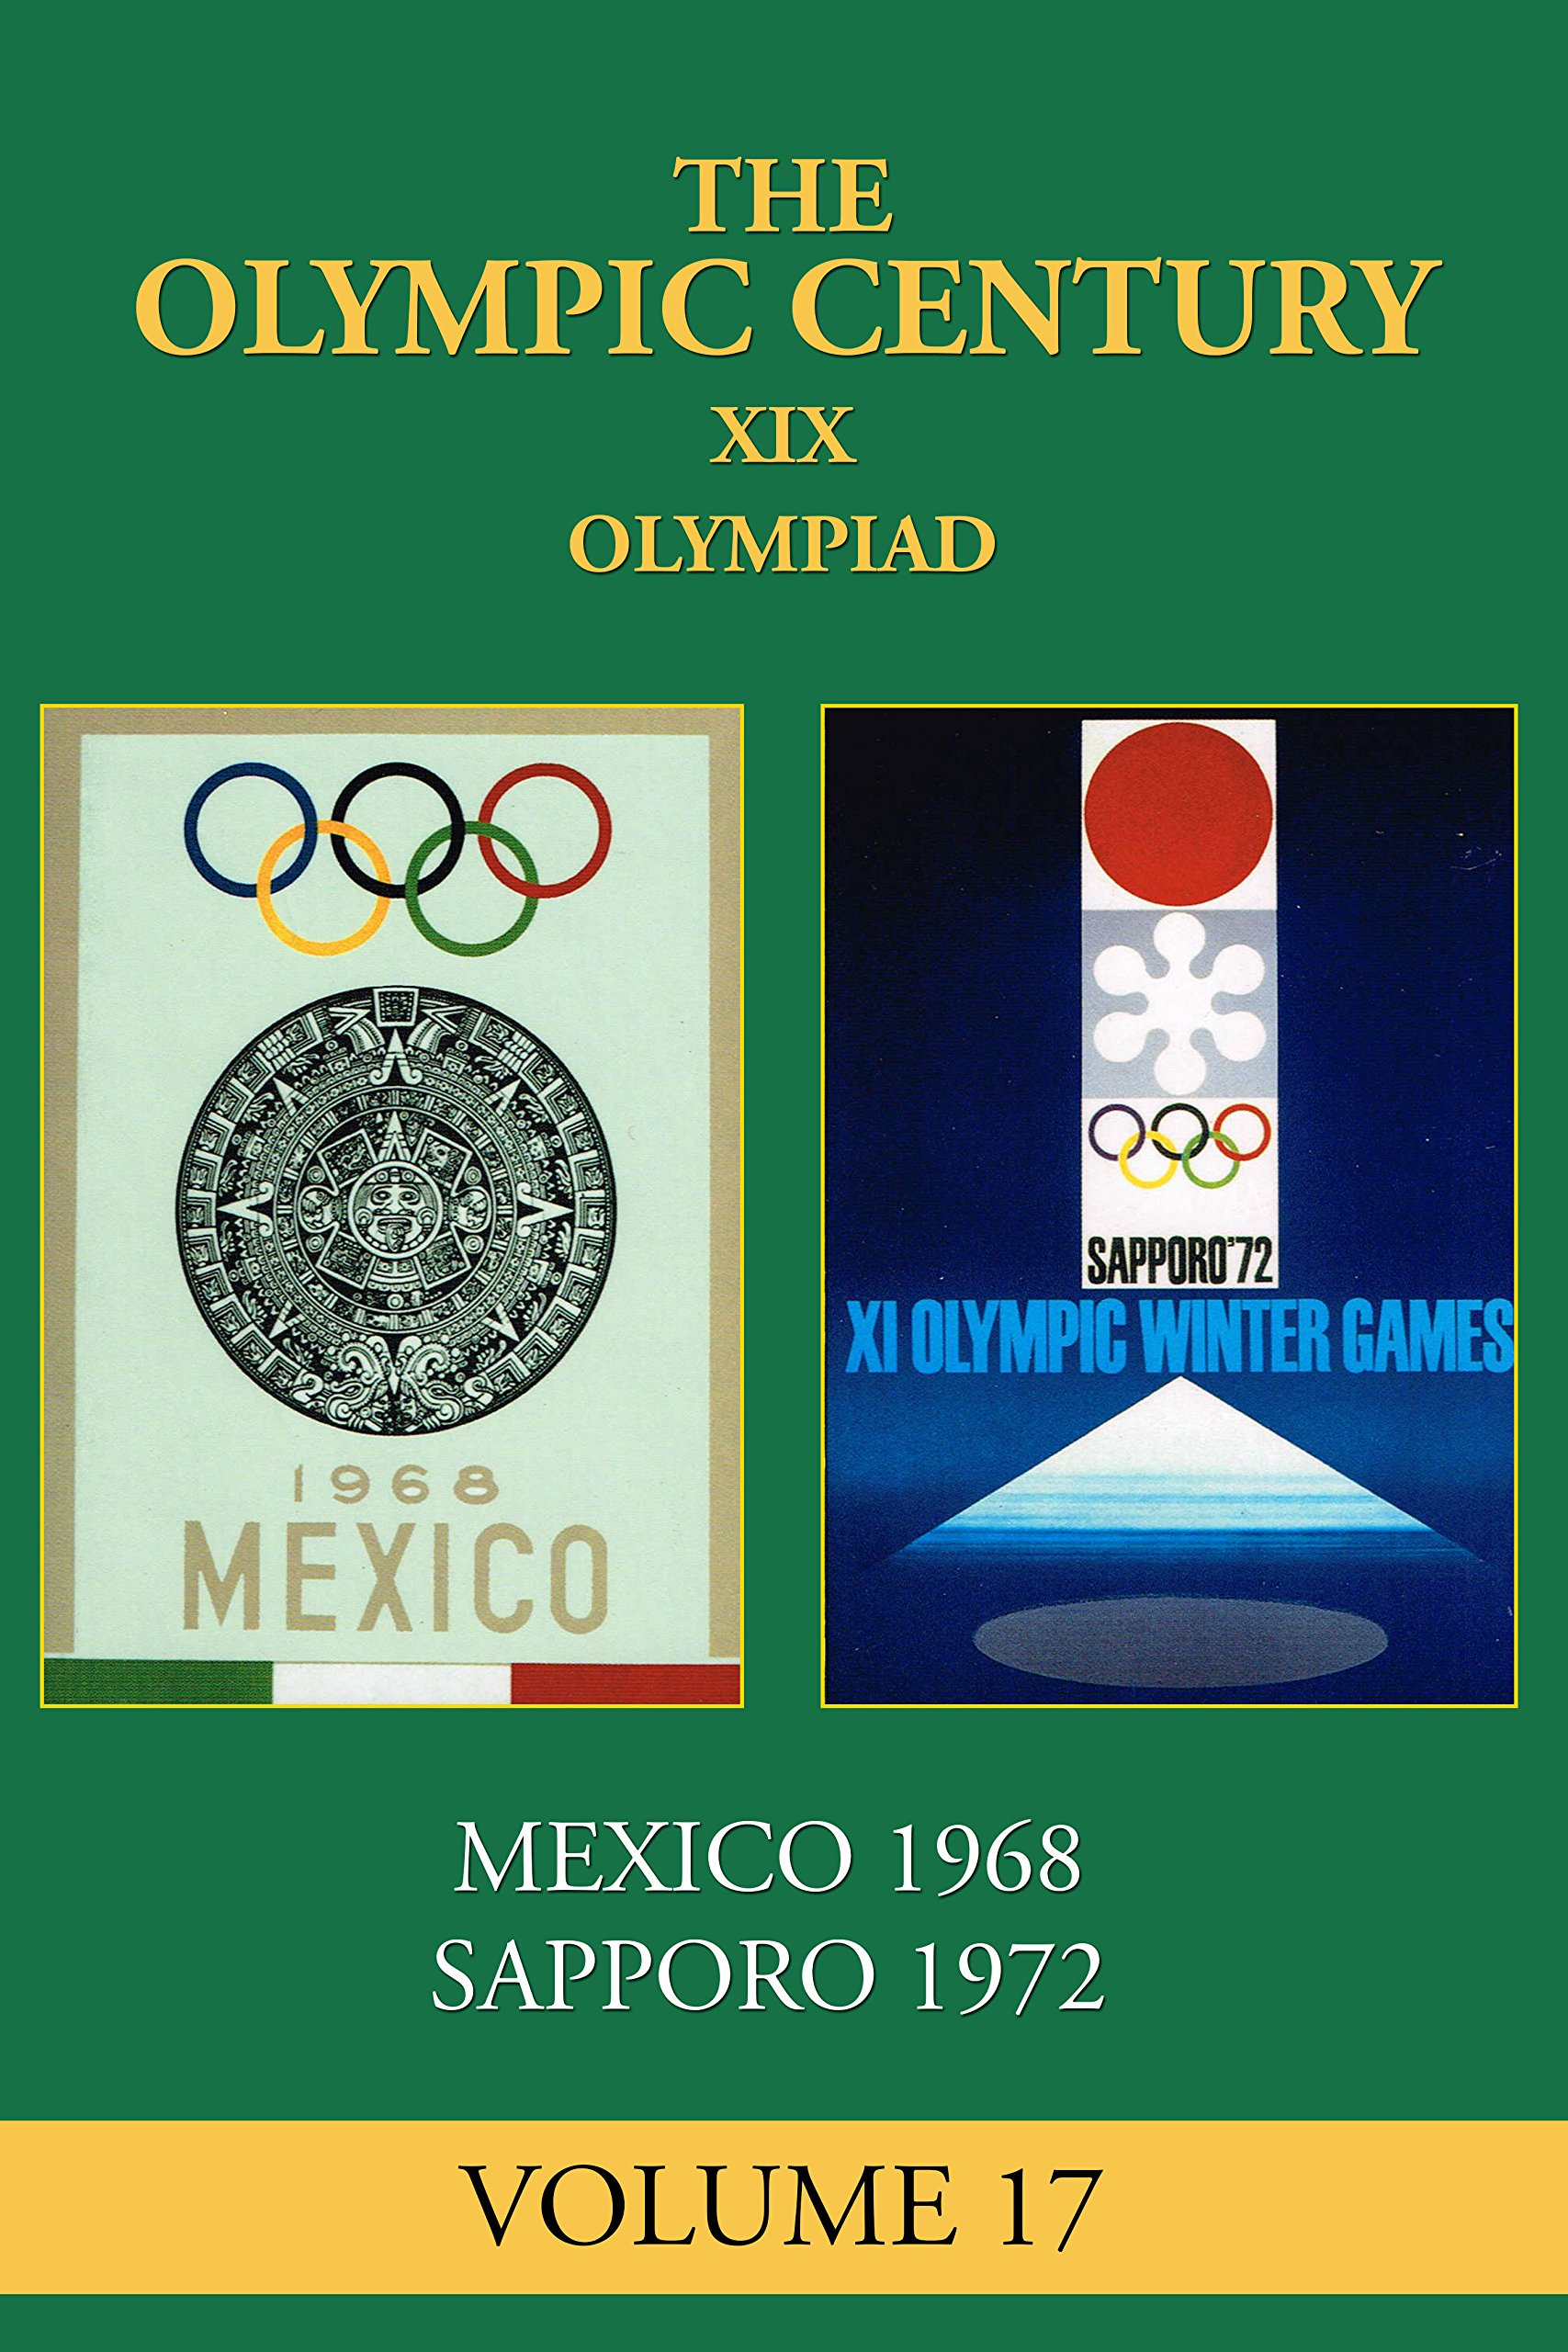 XIX Olympiad: Mexico City 1968, Sapporo 1972 (The Olympic Century Book 17) (English Edition)